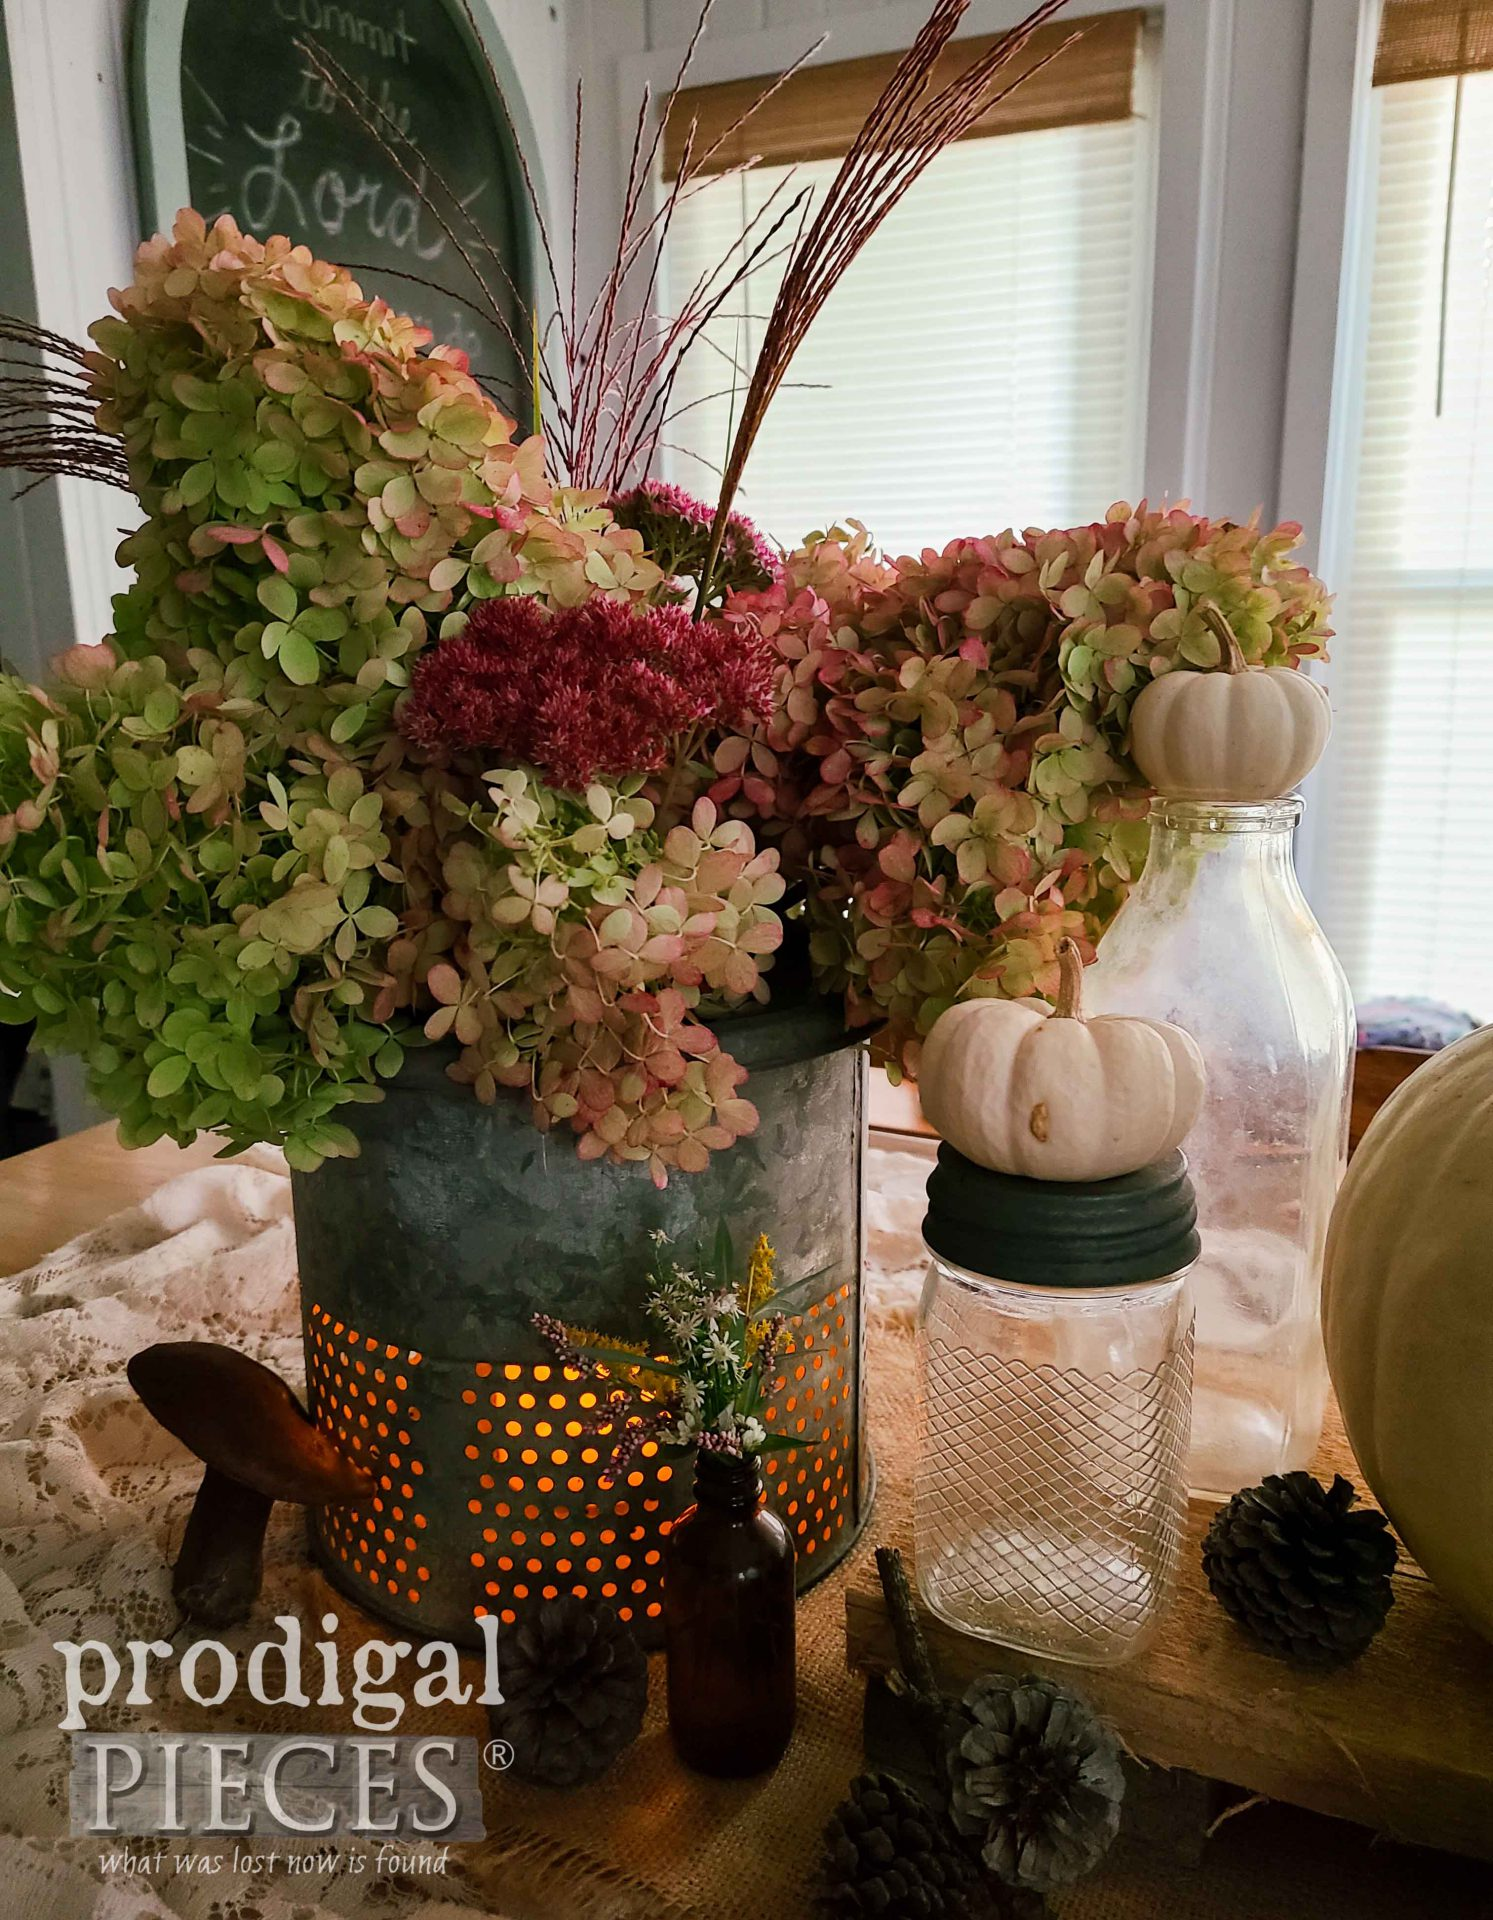 Rustic Minnow Bucket Lantern by Larissa of Prodigal Pieces | prodigalpieces.com #prodigalpieces #farmhouse #fall #home #upcycled